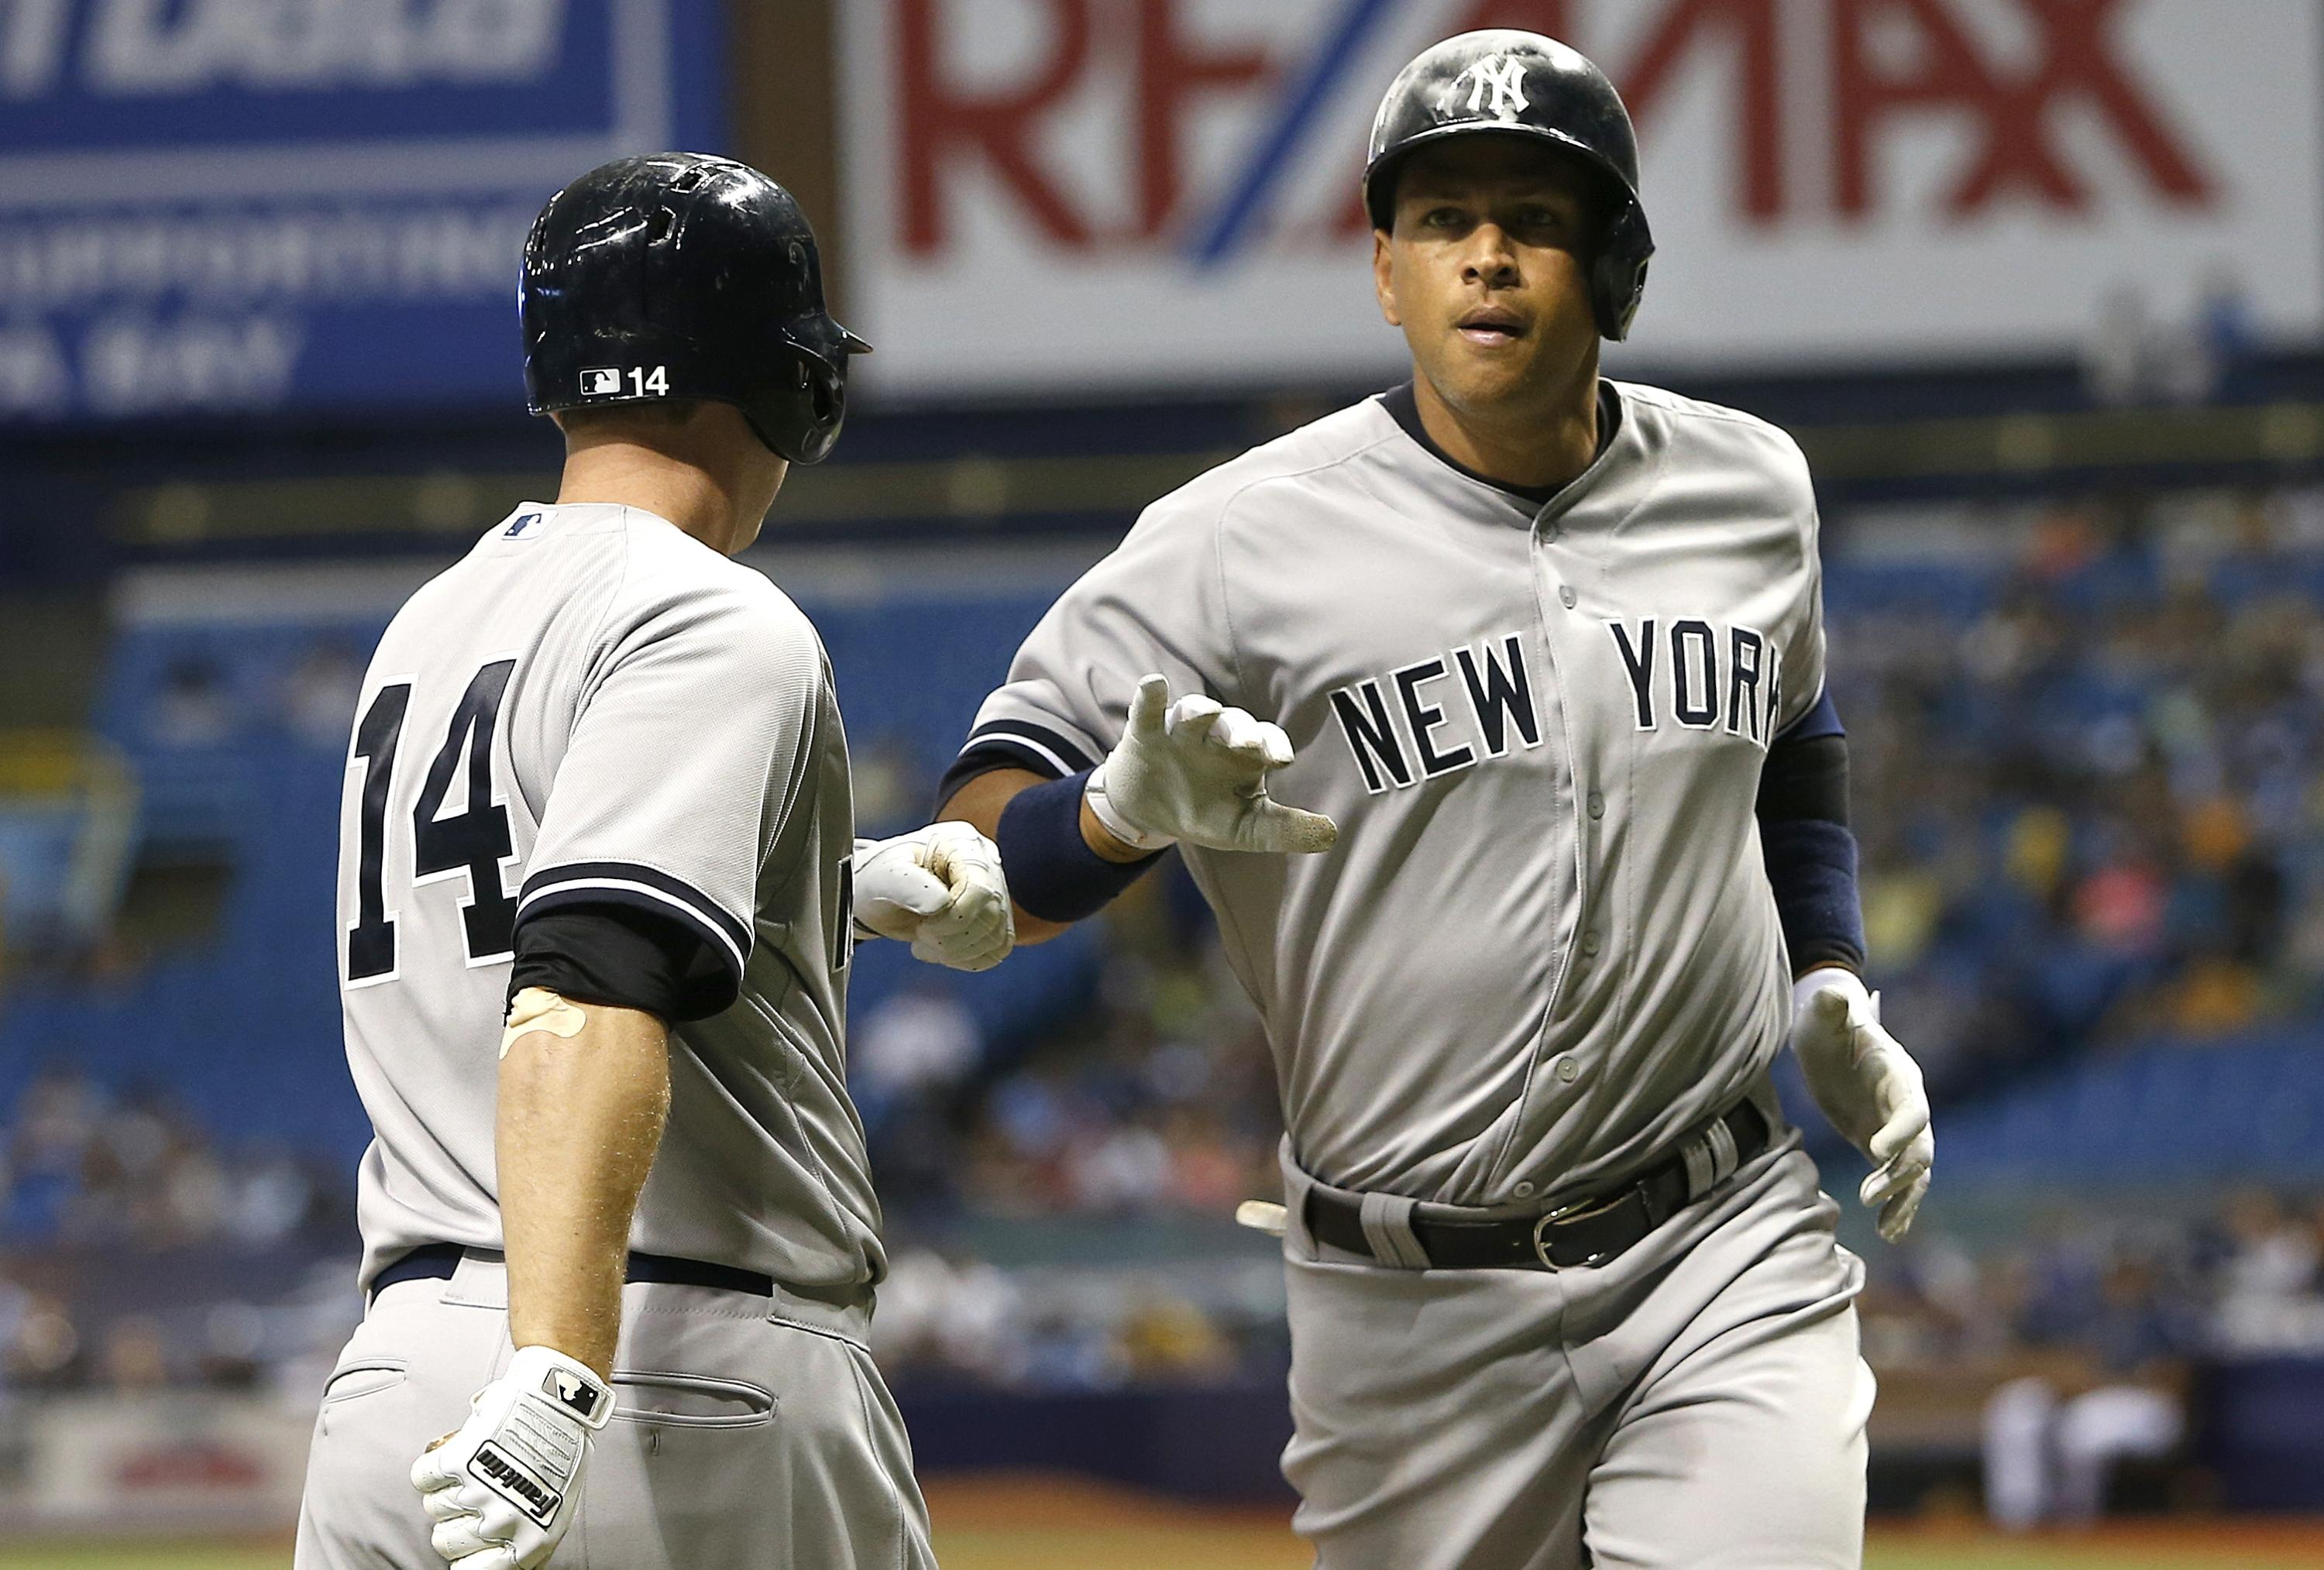 Alex Rodriguez mashes 477-foot home run at Tropicana Field